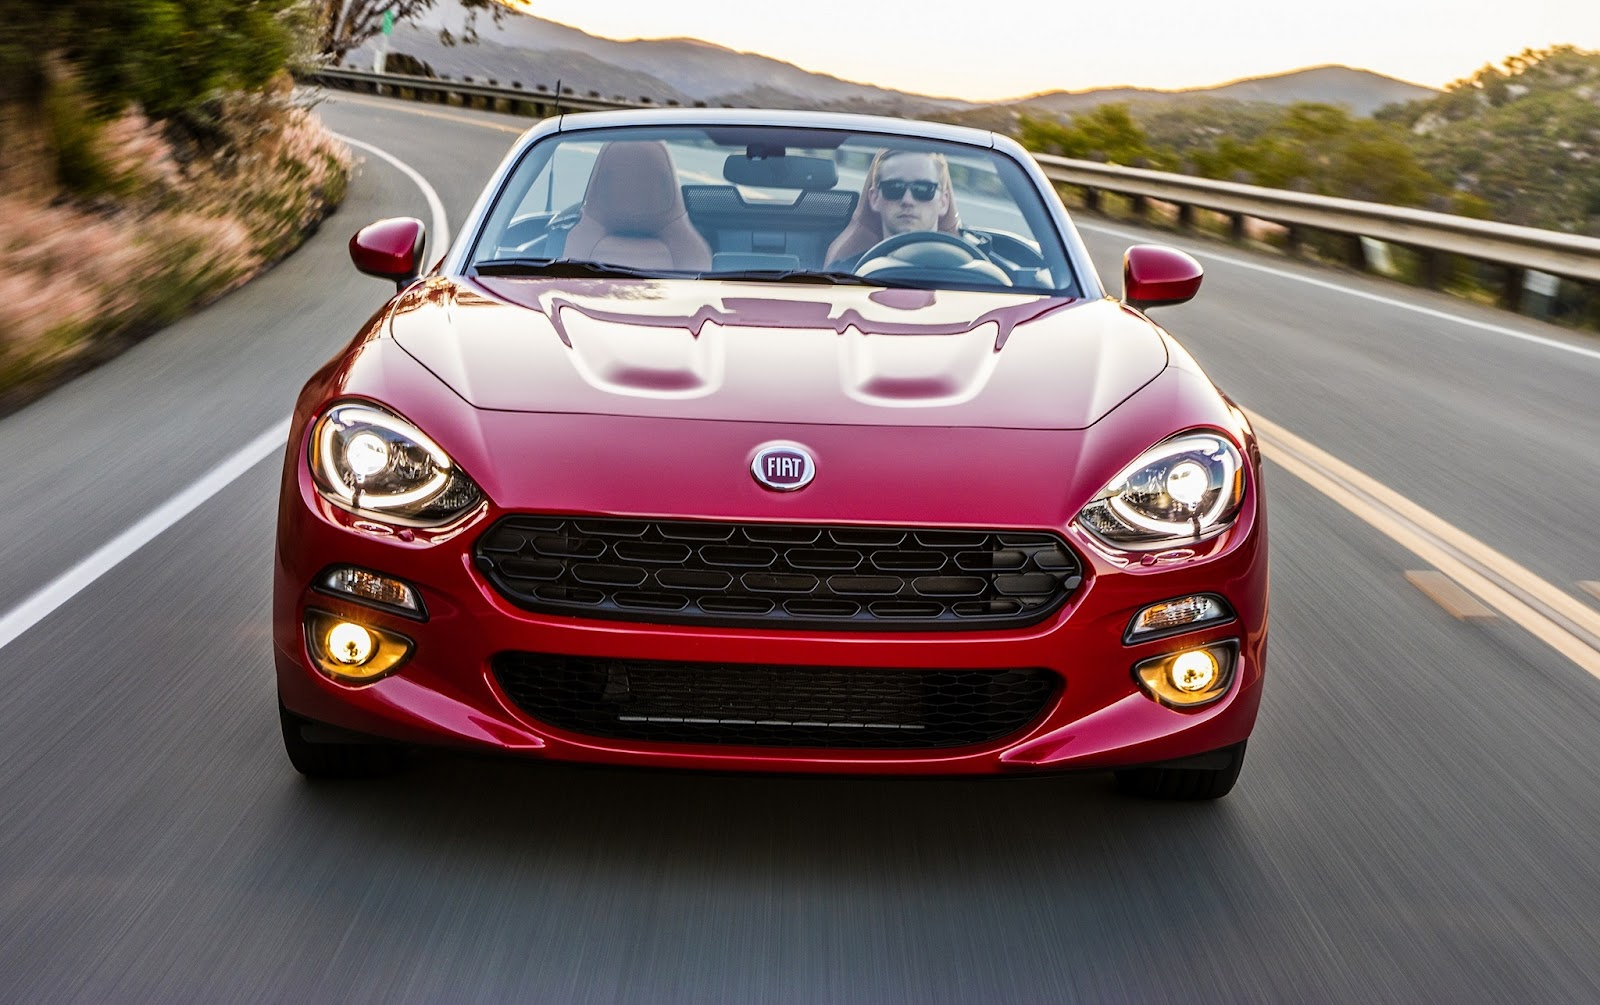 2018 Fiat 124 Spider Model Changes Fiat 500 Usa